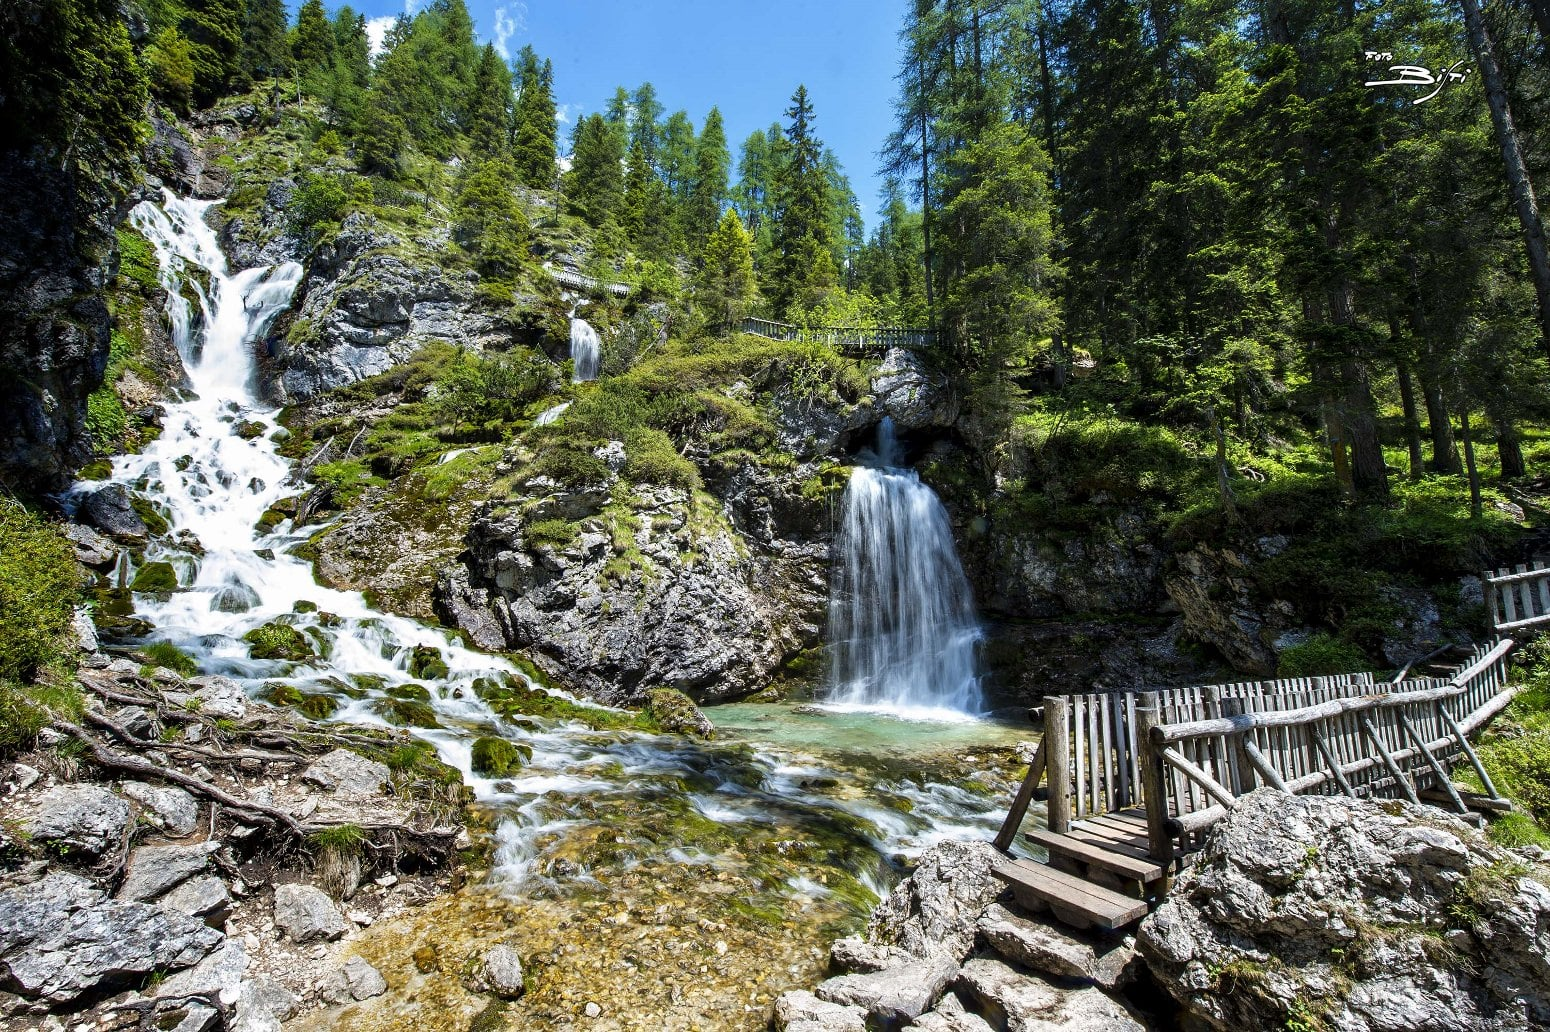 madonna-di-campiglio-vallesinella-waterfall-photo-bisti.jpg